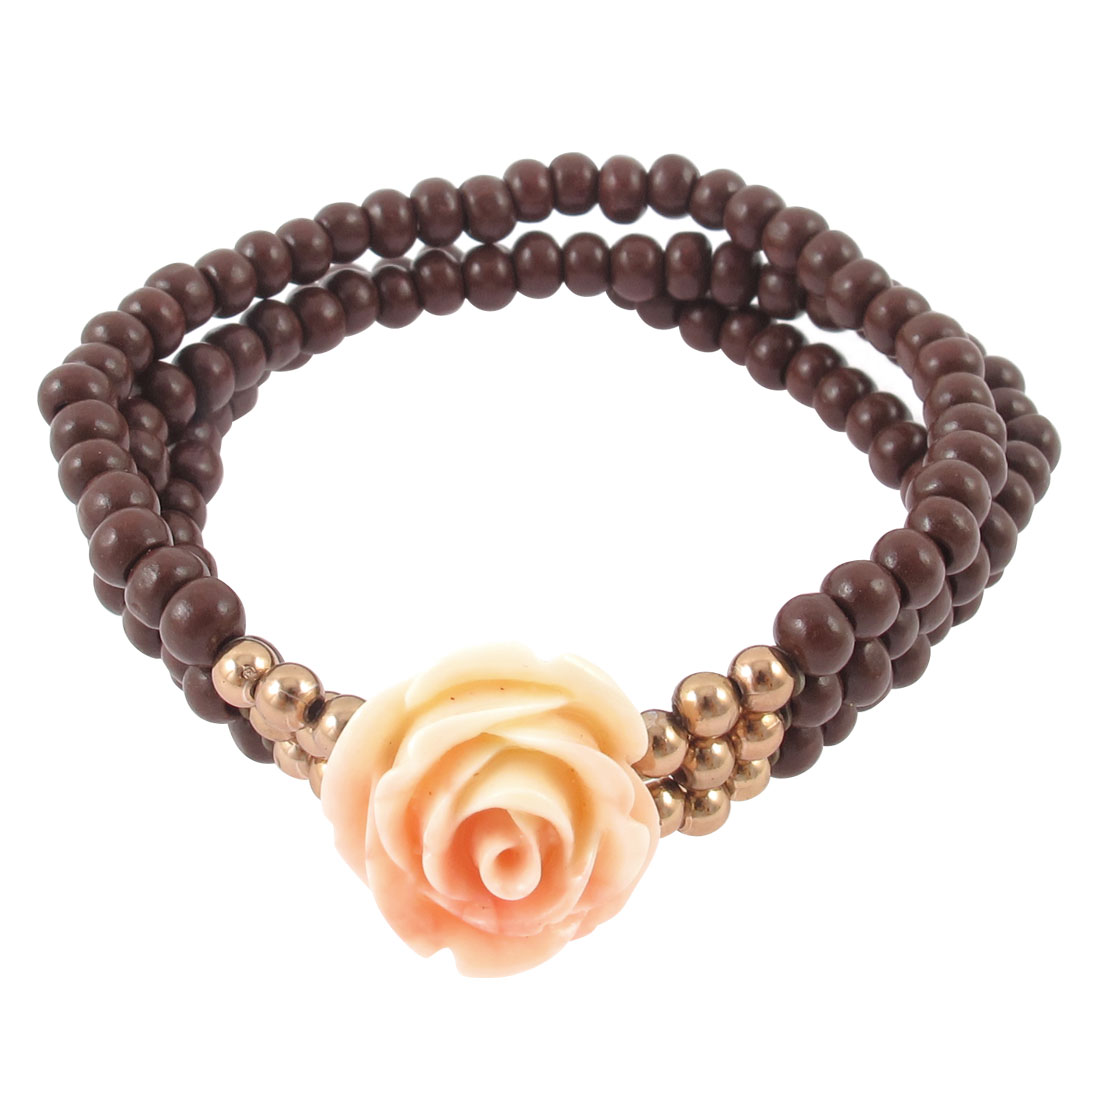 Woman Round Bead Ornament 3 Layers Stretchy Floral Linked Wrist Bracelet Brown